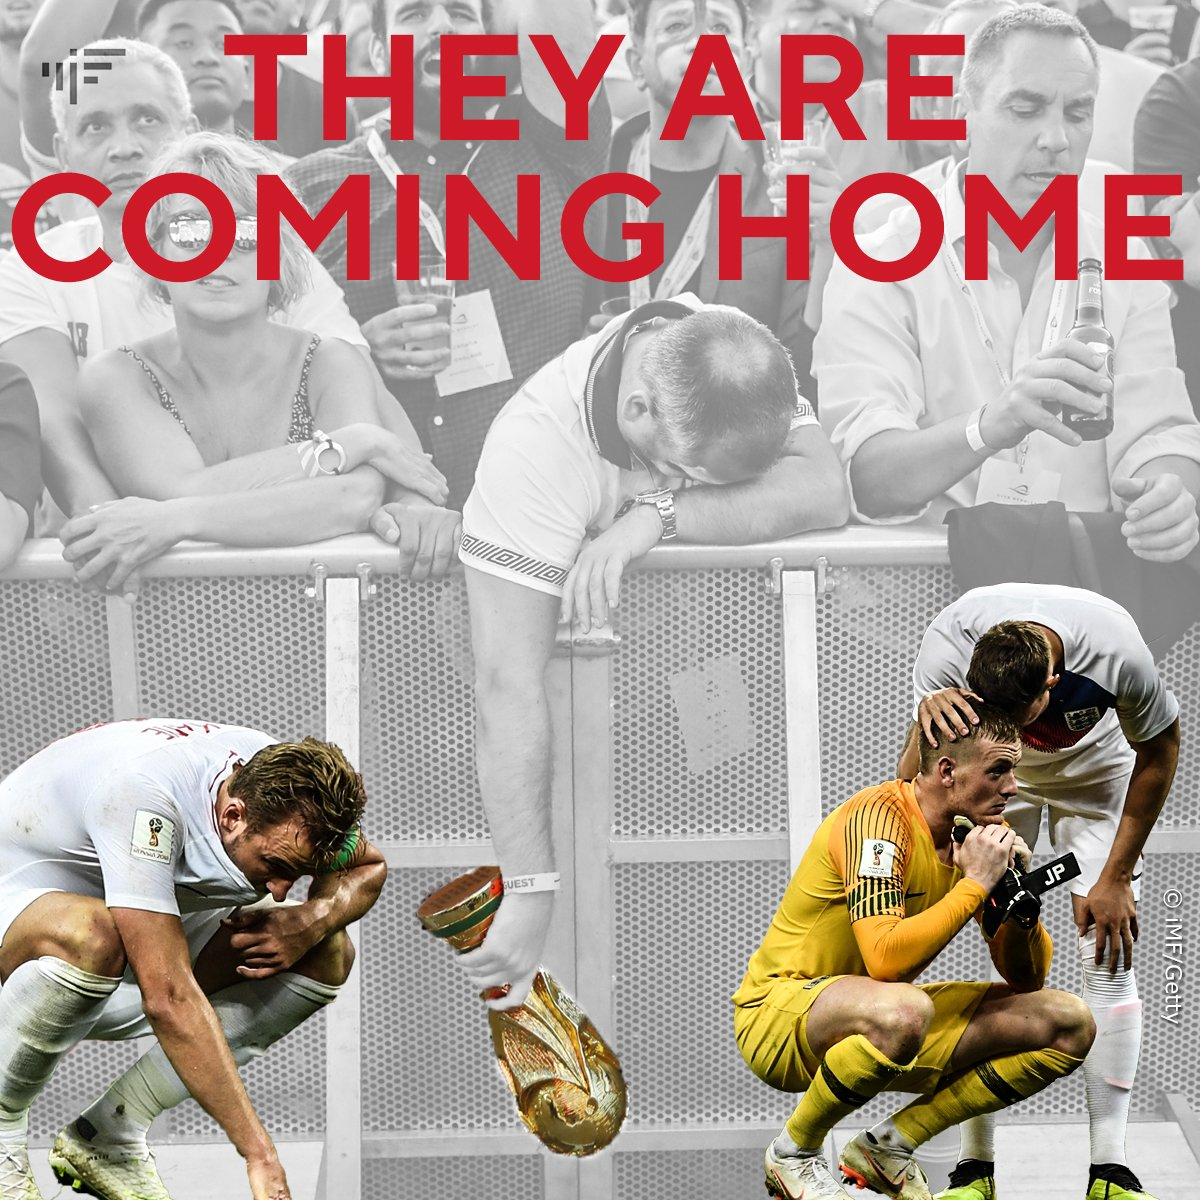 But IT is not coming home... #CROENG #ThreeLions #ItsComingHome